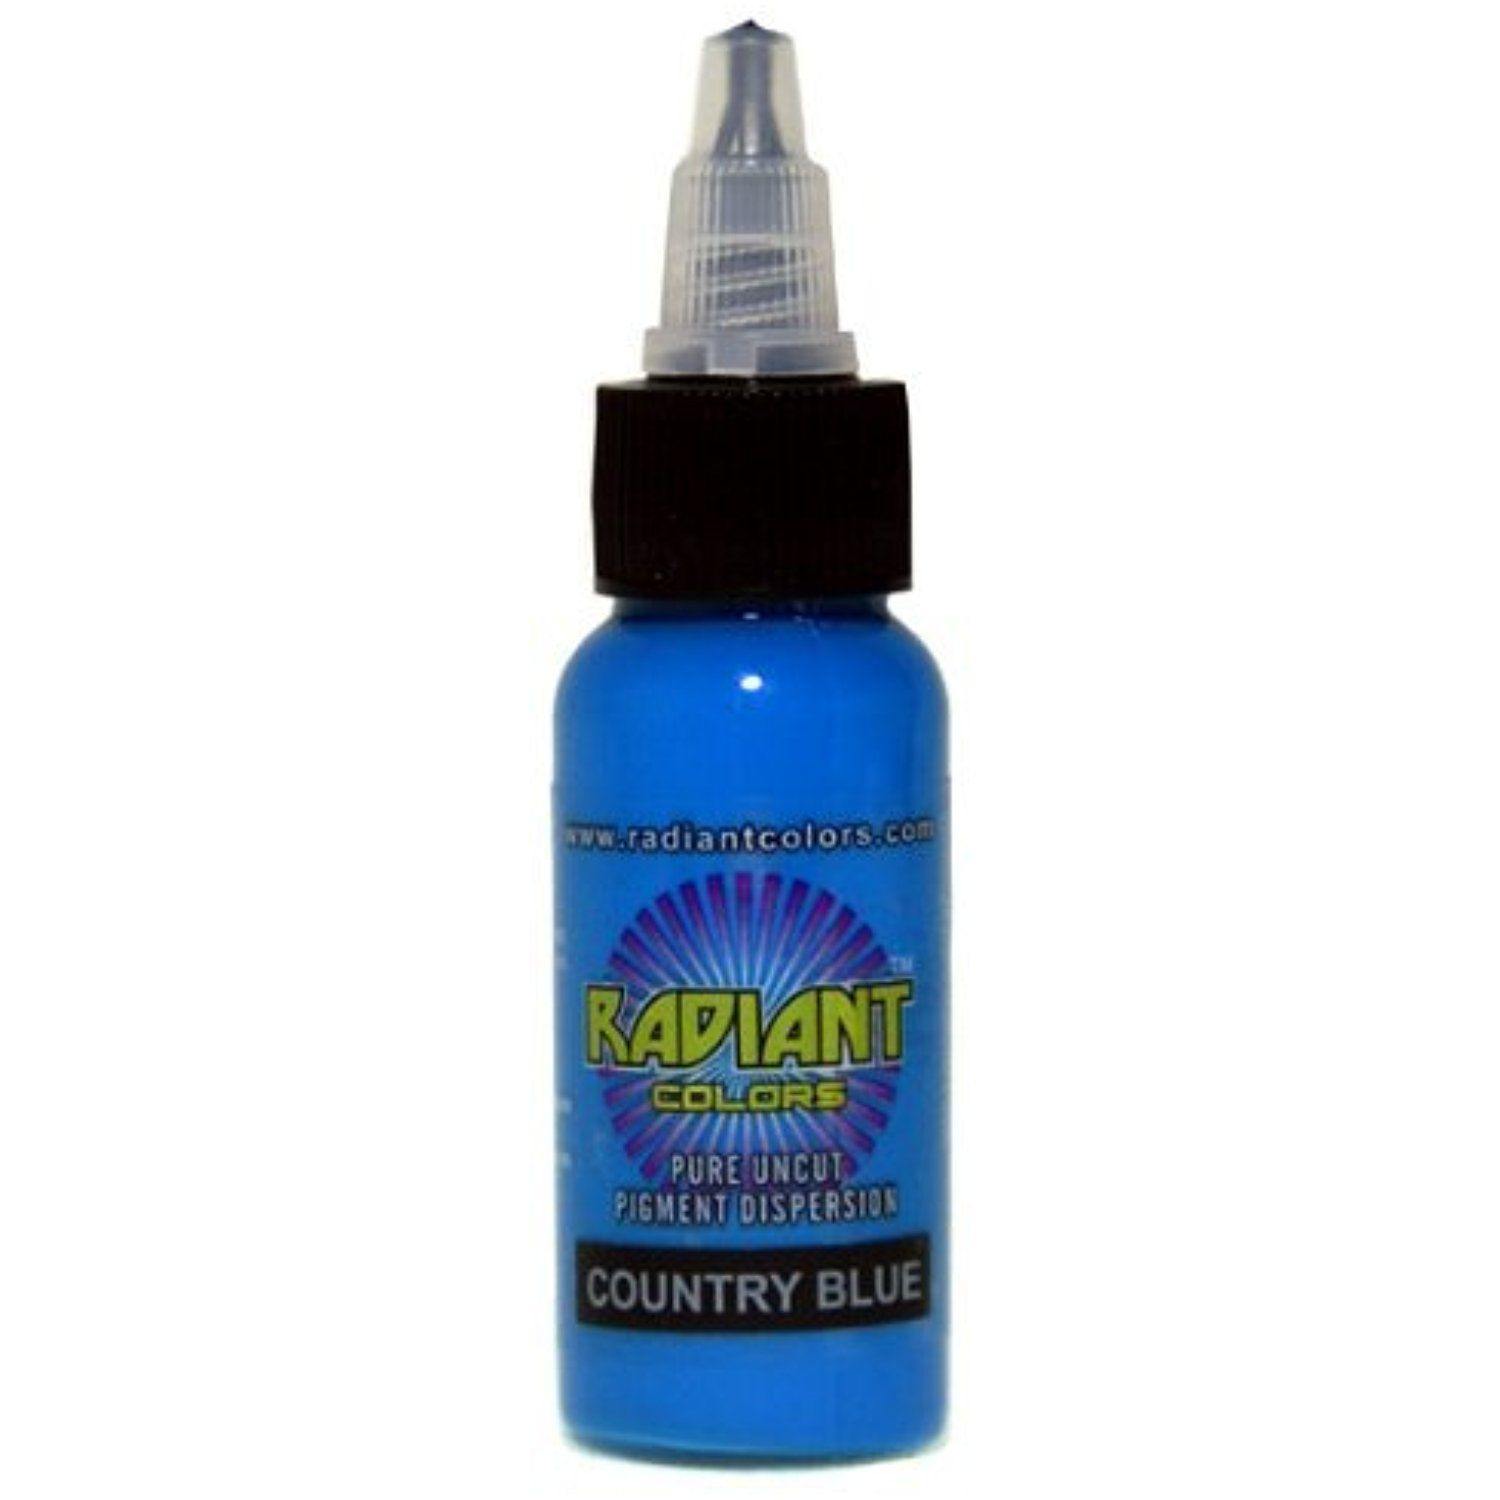 Radiant Colors Country Blue Tattoo Ink 1oz Made In Usa Learn More By Visiting The Image Link This Is An Affil Blue Ink Tattoos Blue Tattoo Country Blue